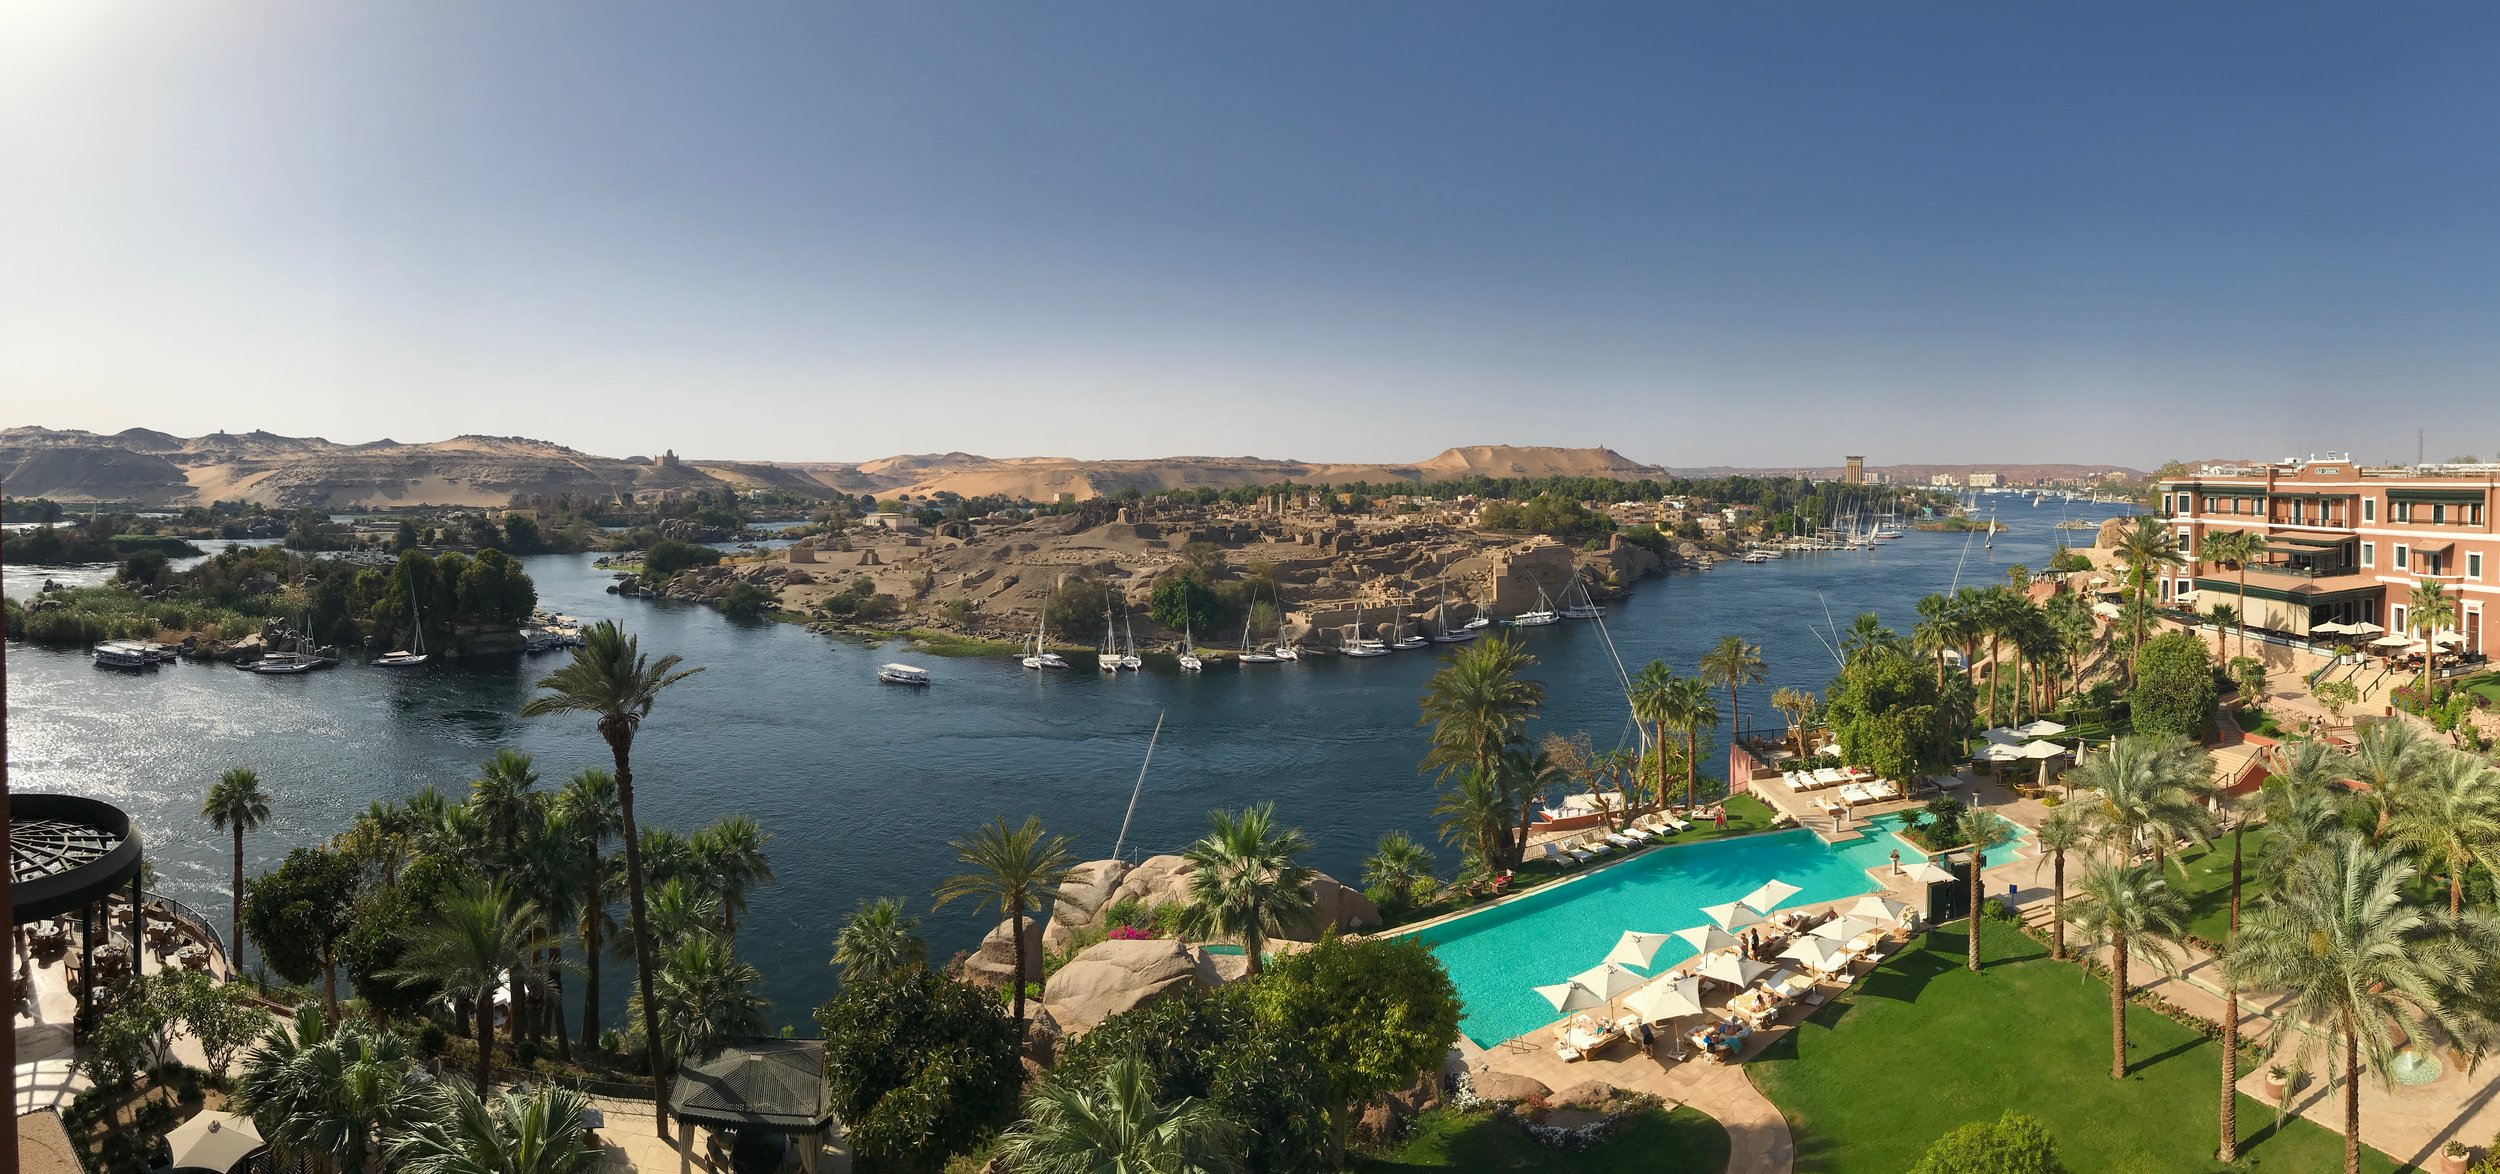 The Undeniable Charm Of The Old Cataract Hotel In Aswan